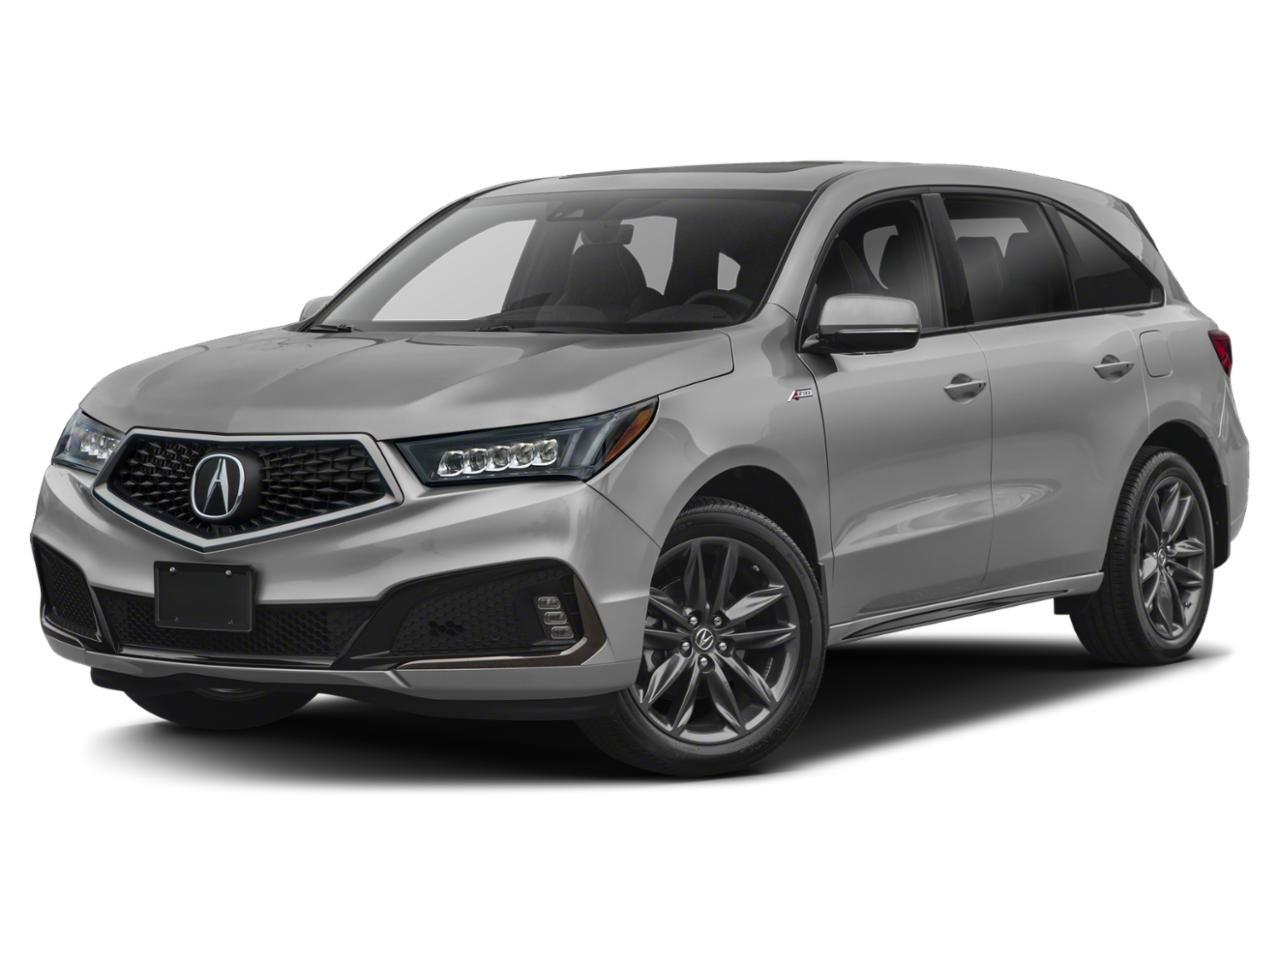 2020 Acura Mdx For Sale At Performance Acura 5j8yd4h06ll802429